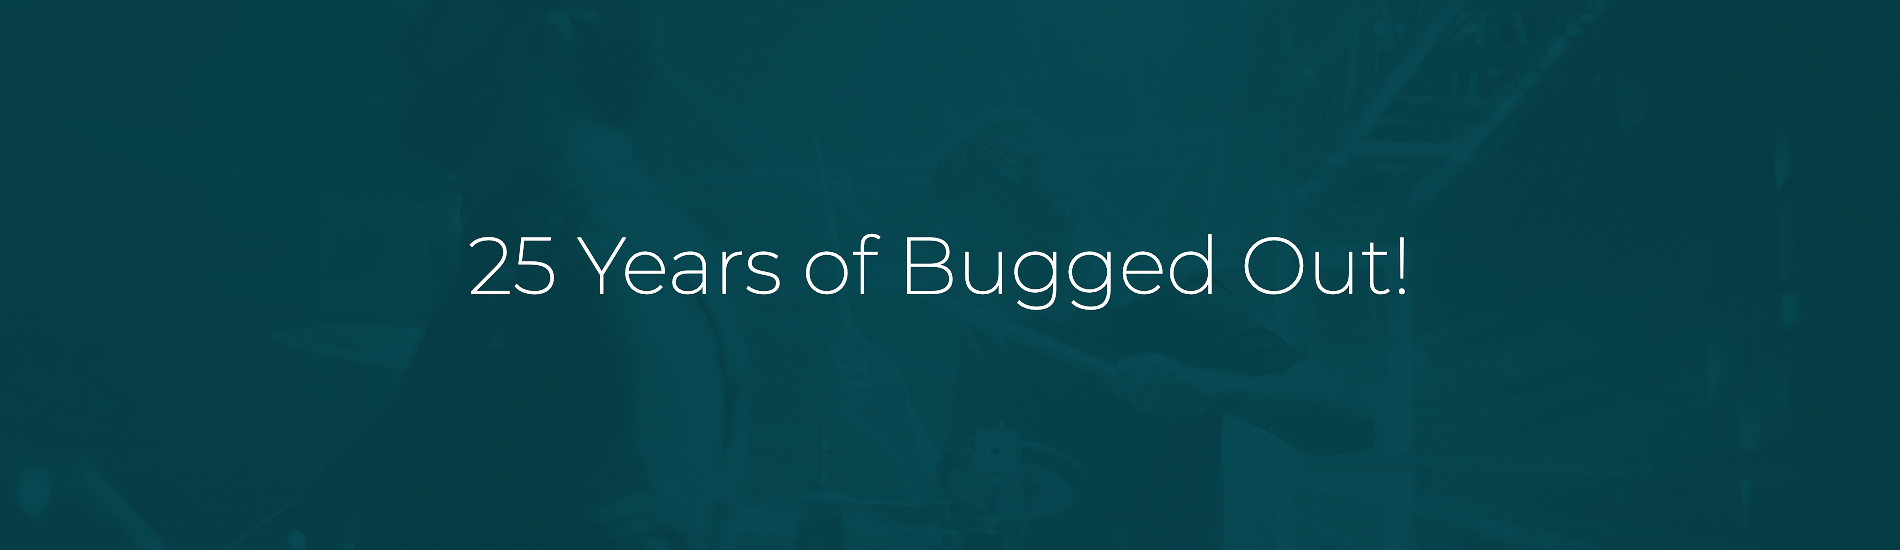 25 Years of Bugged Out!